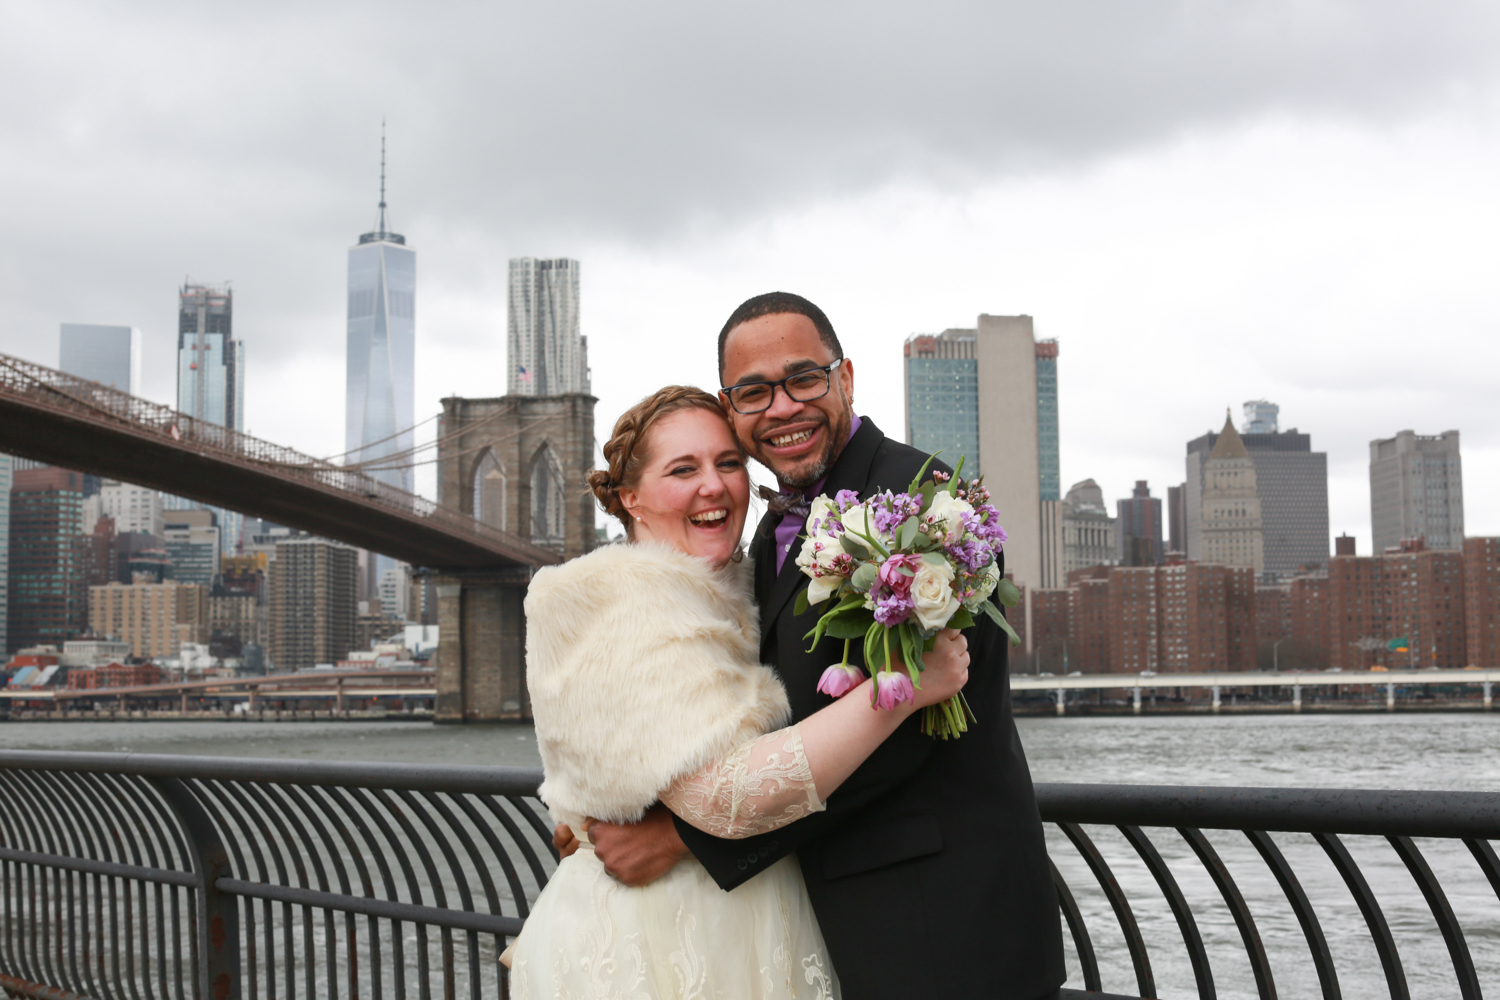 NYC elopement day photoshoot of bride and groom